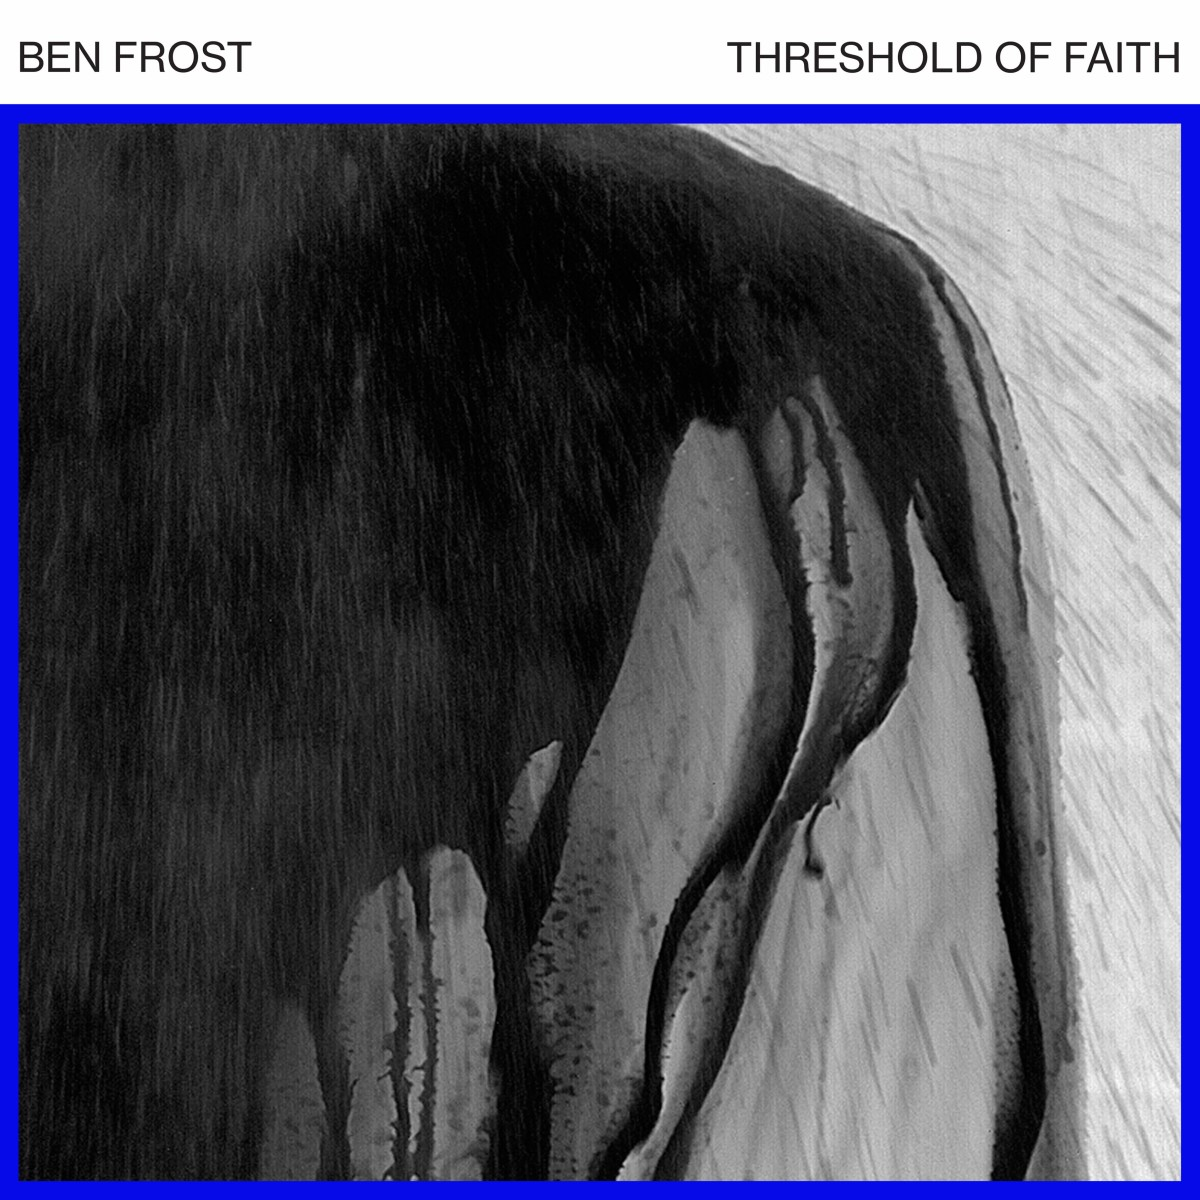 Ben Frost Threshold of Faith EP review